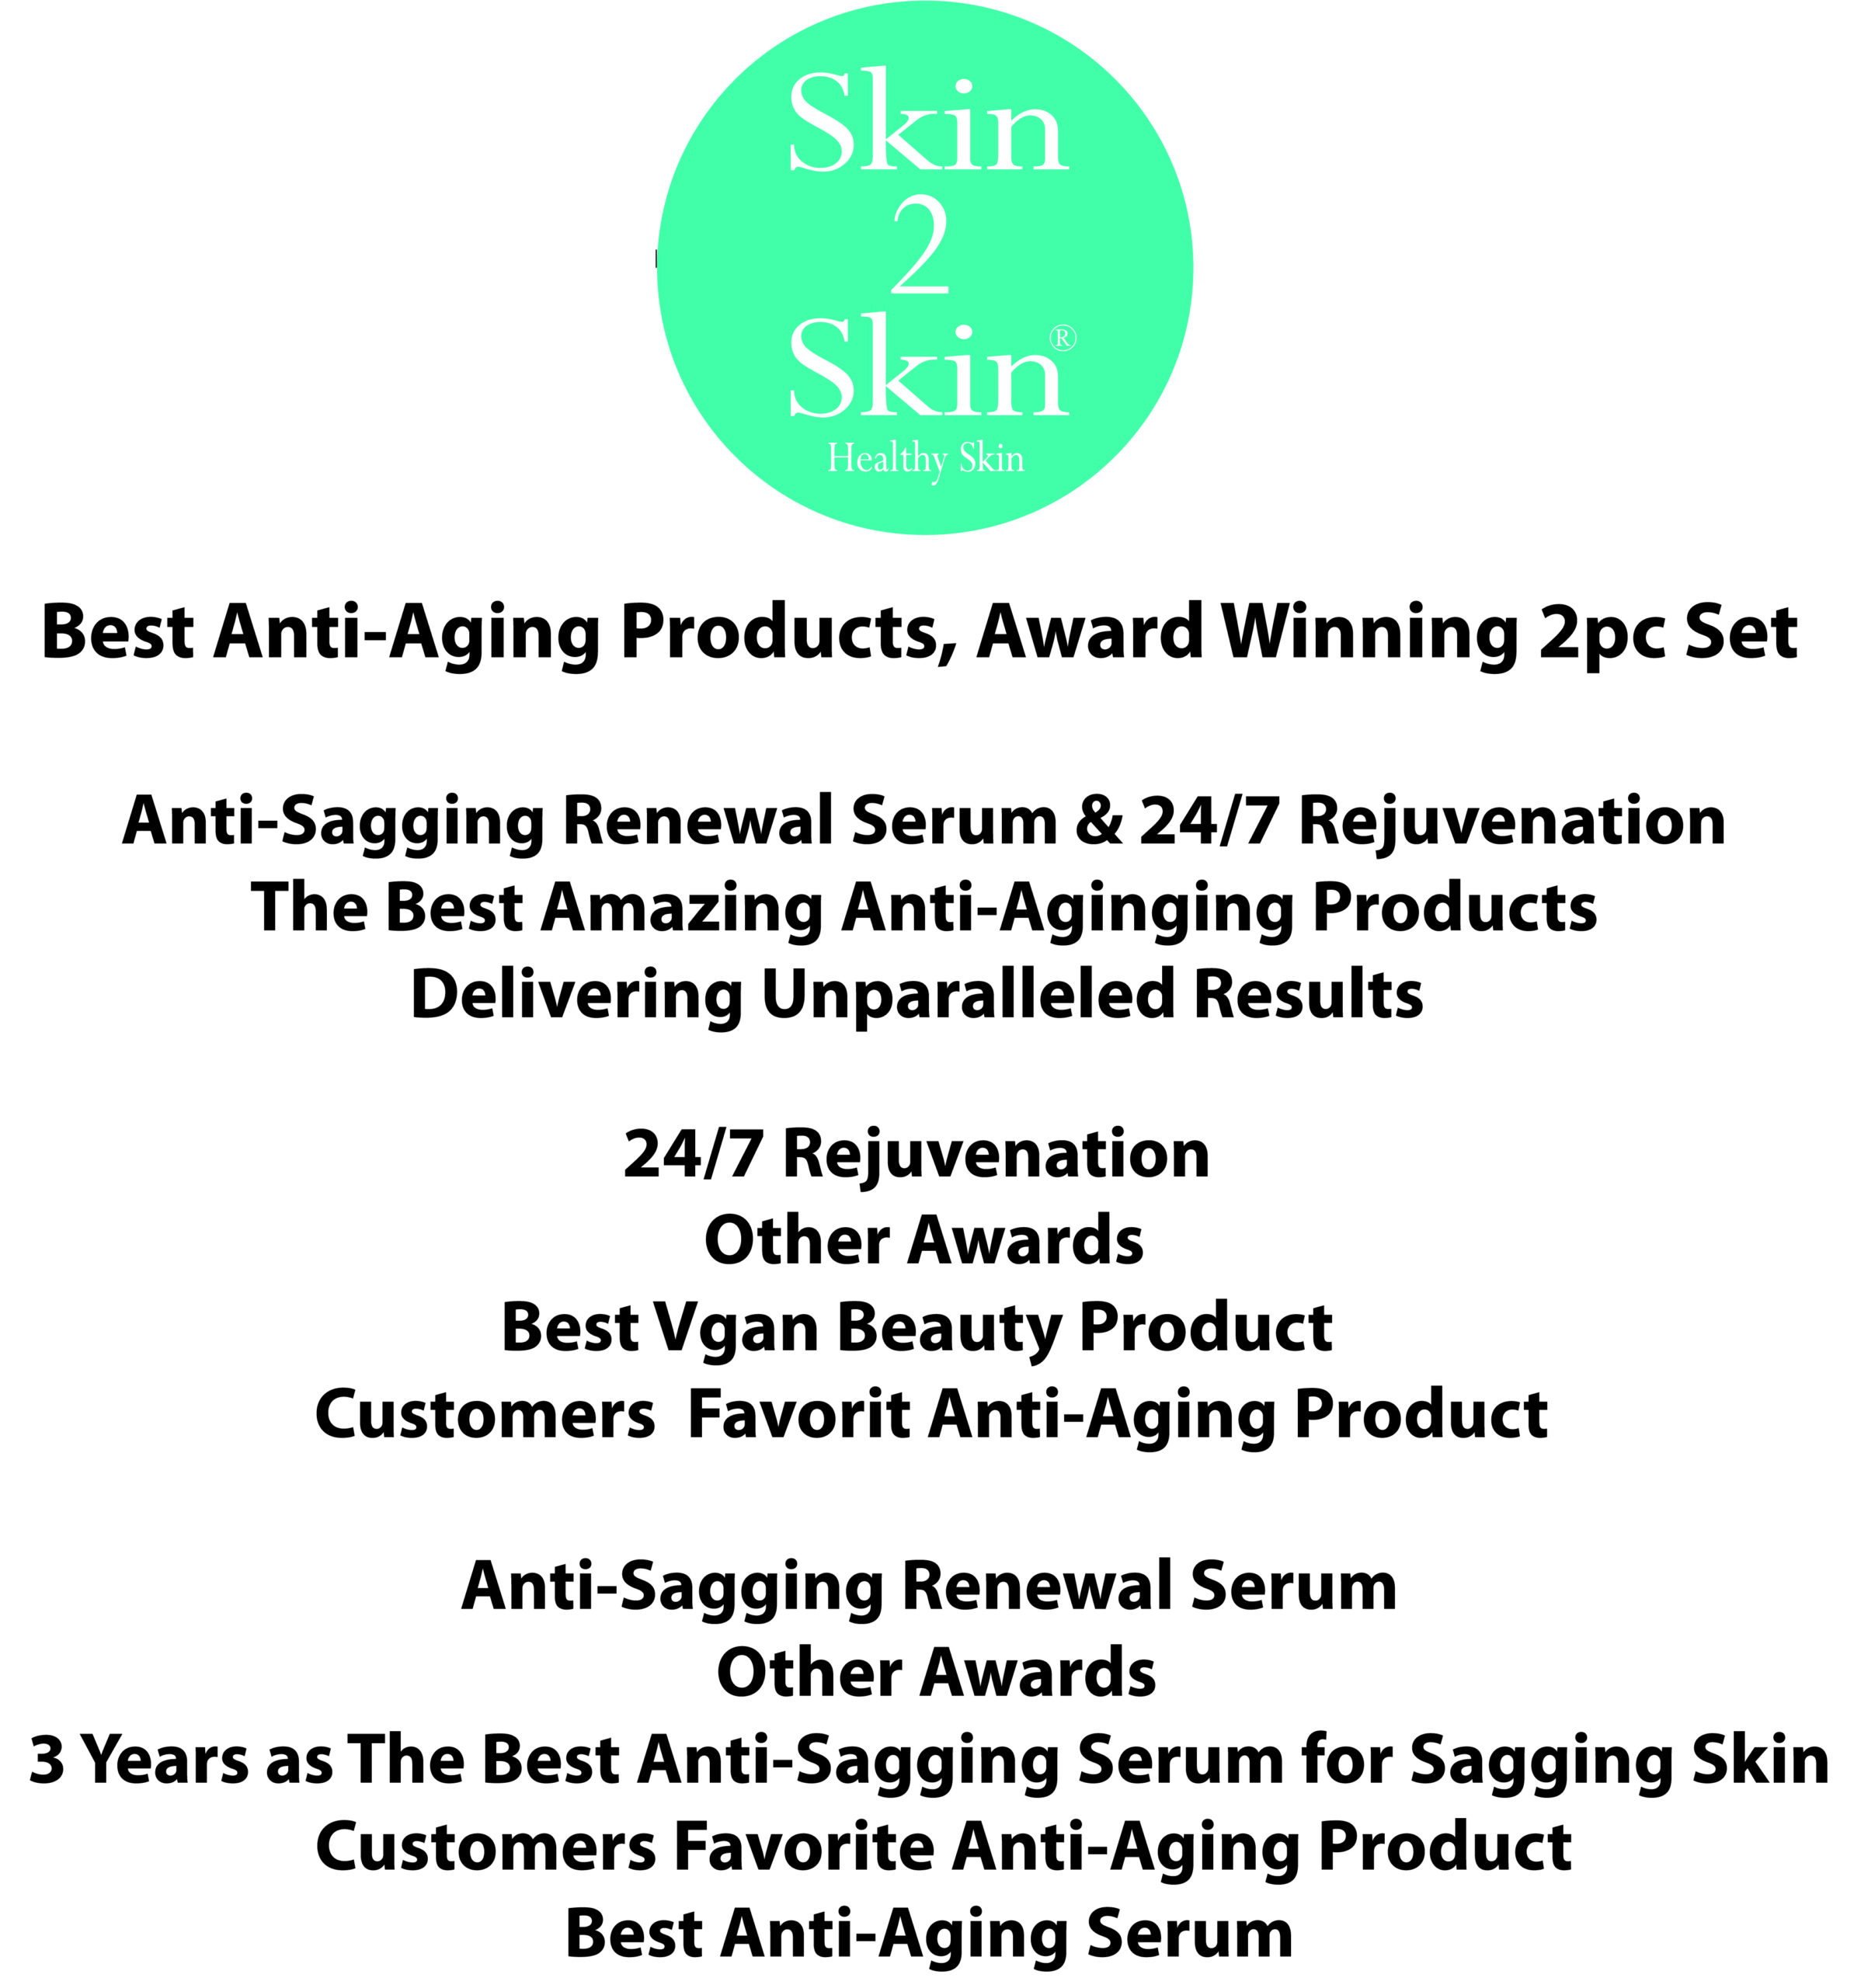 Awarded Best Anti-Aging Products 2pc Set by Skin 2 Skin